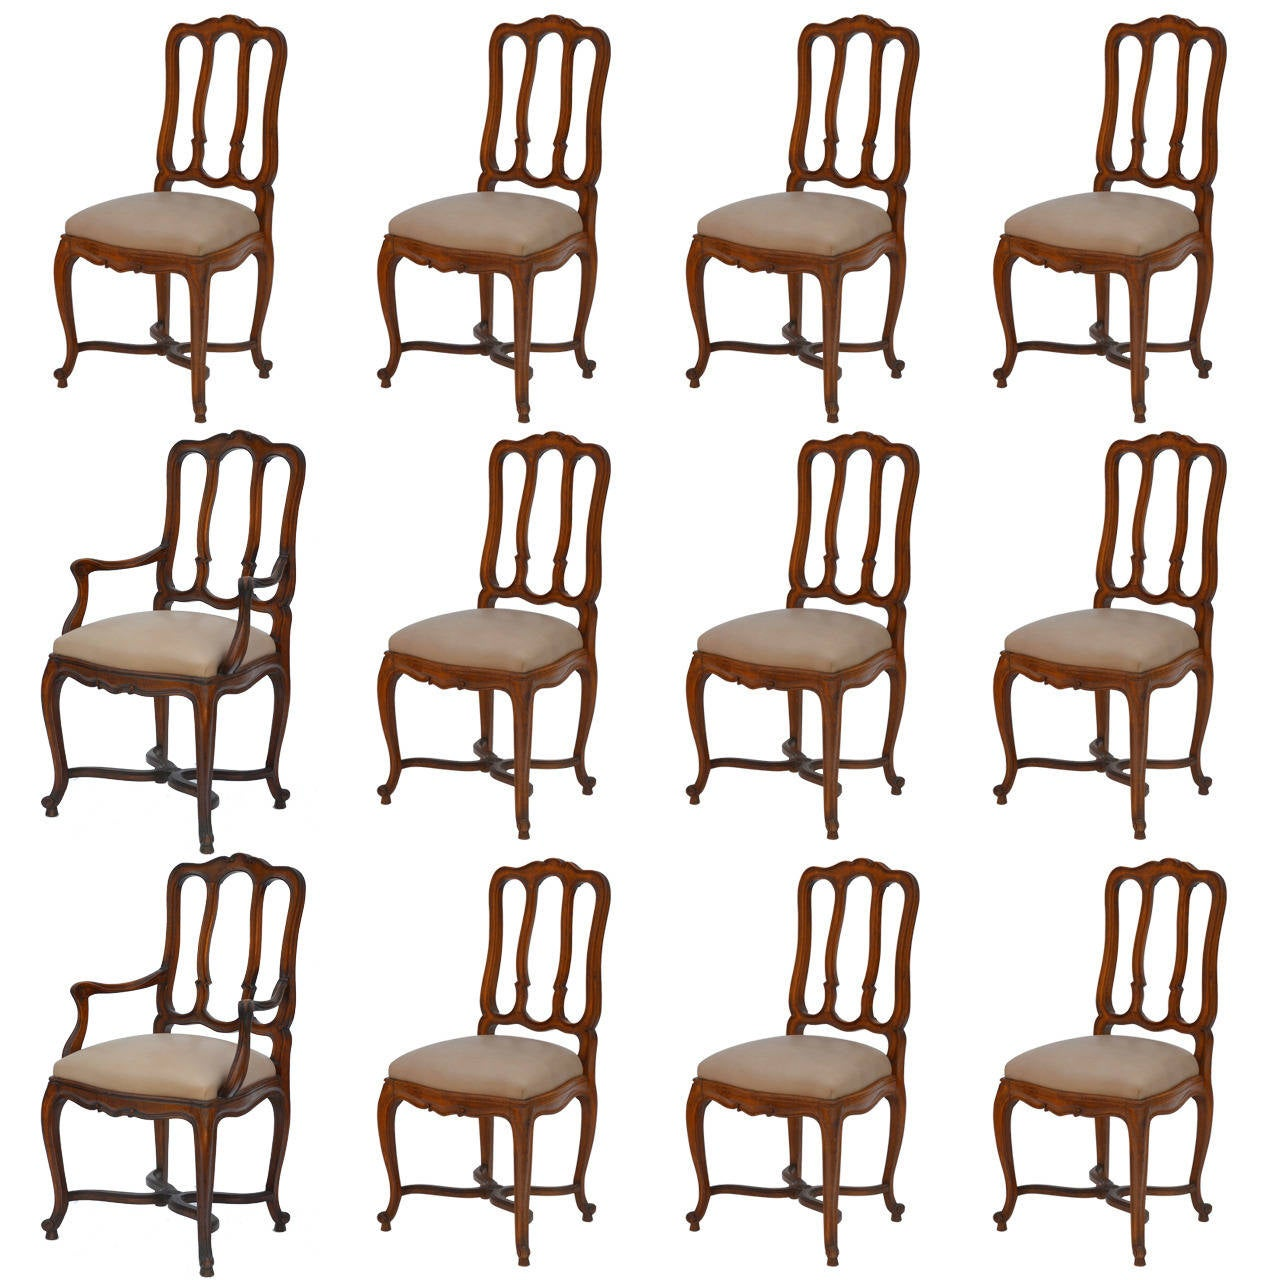 Impressive Set Of 12 Chic French Louis XV Style Dining Chairs And Armchairs F